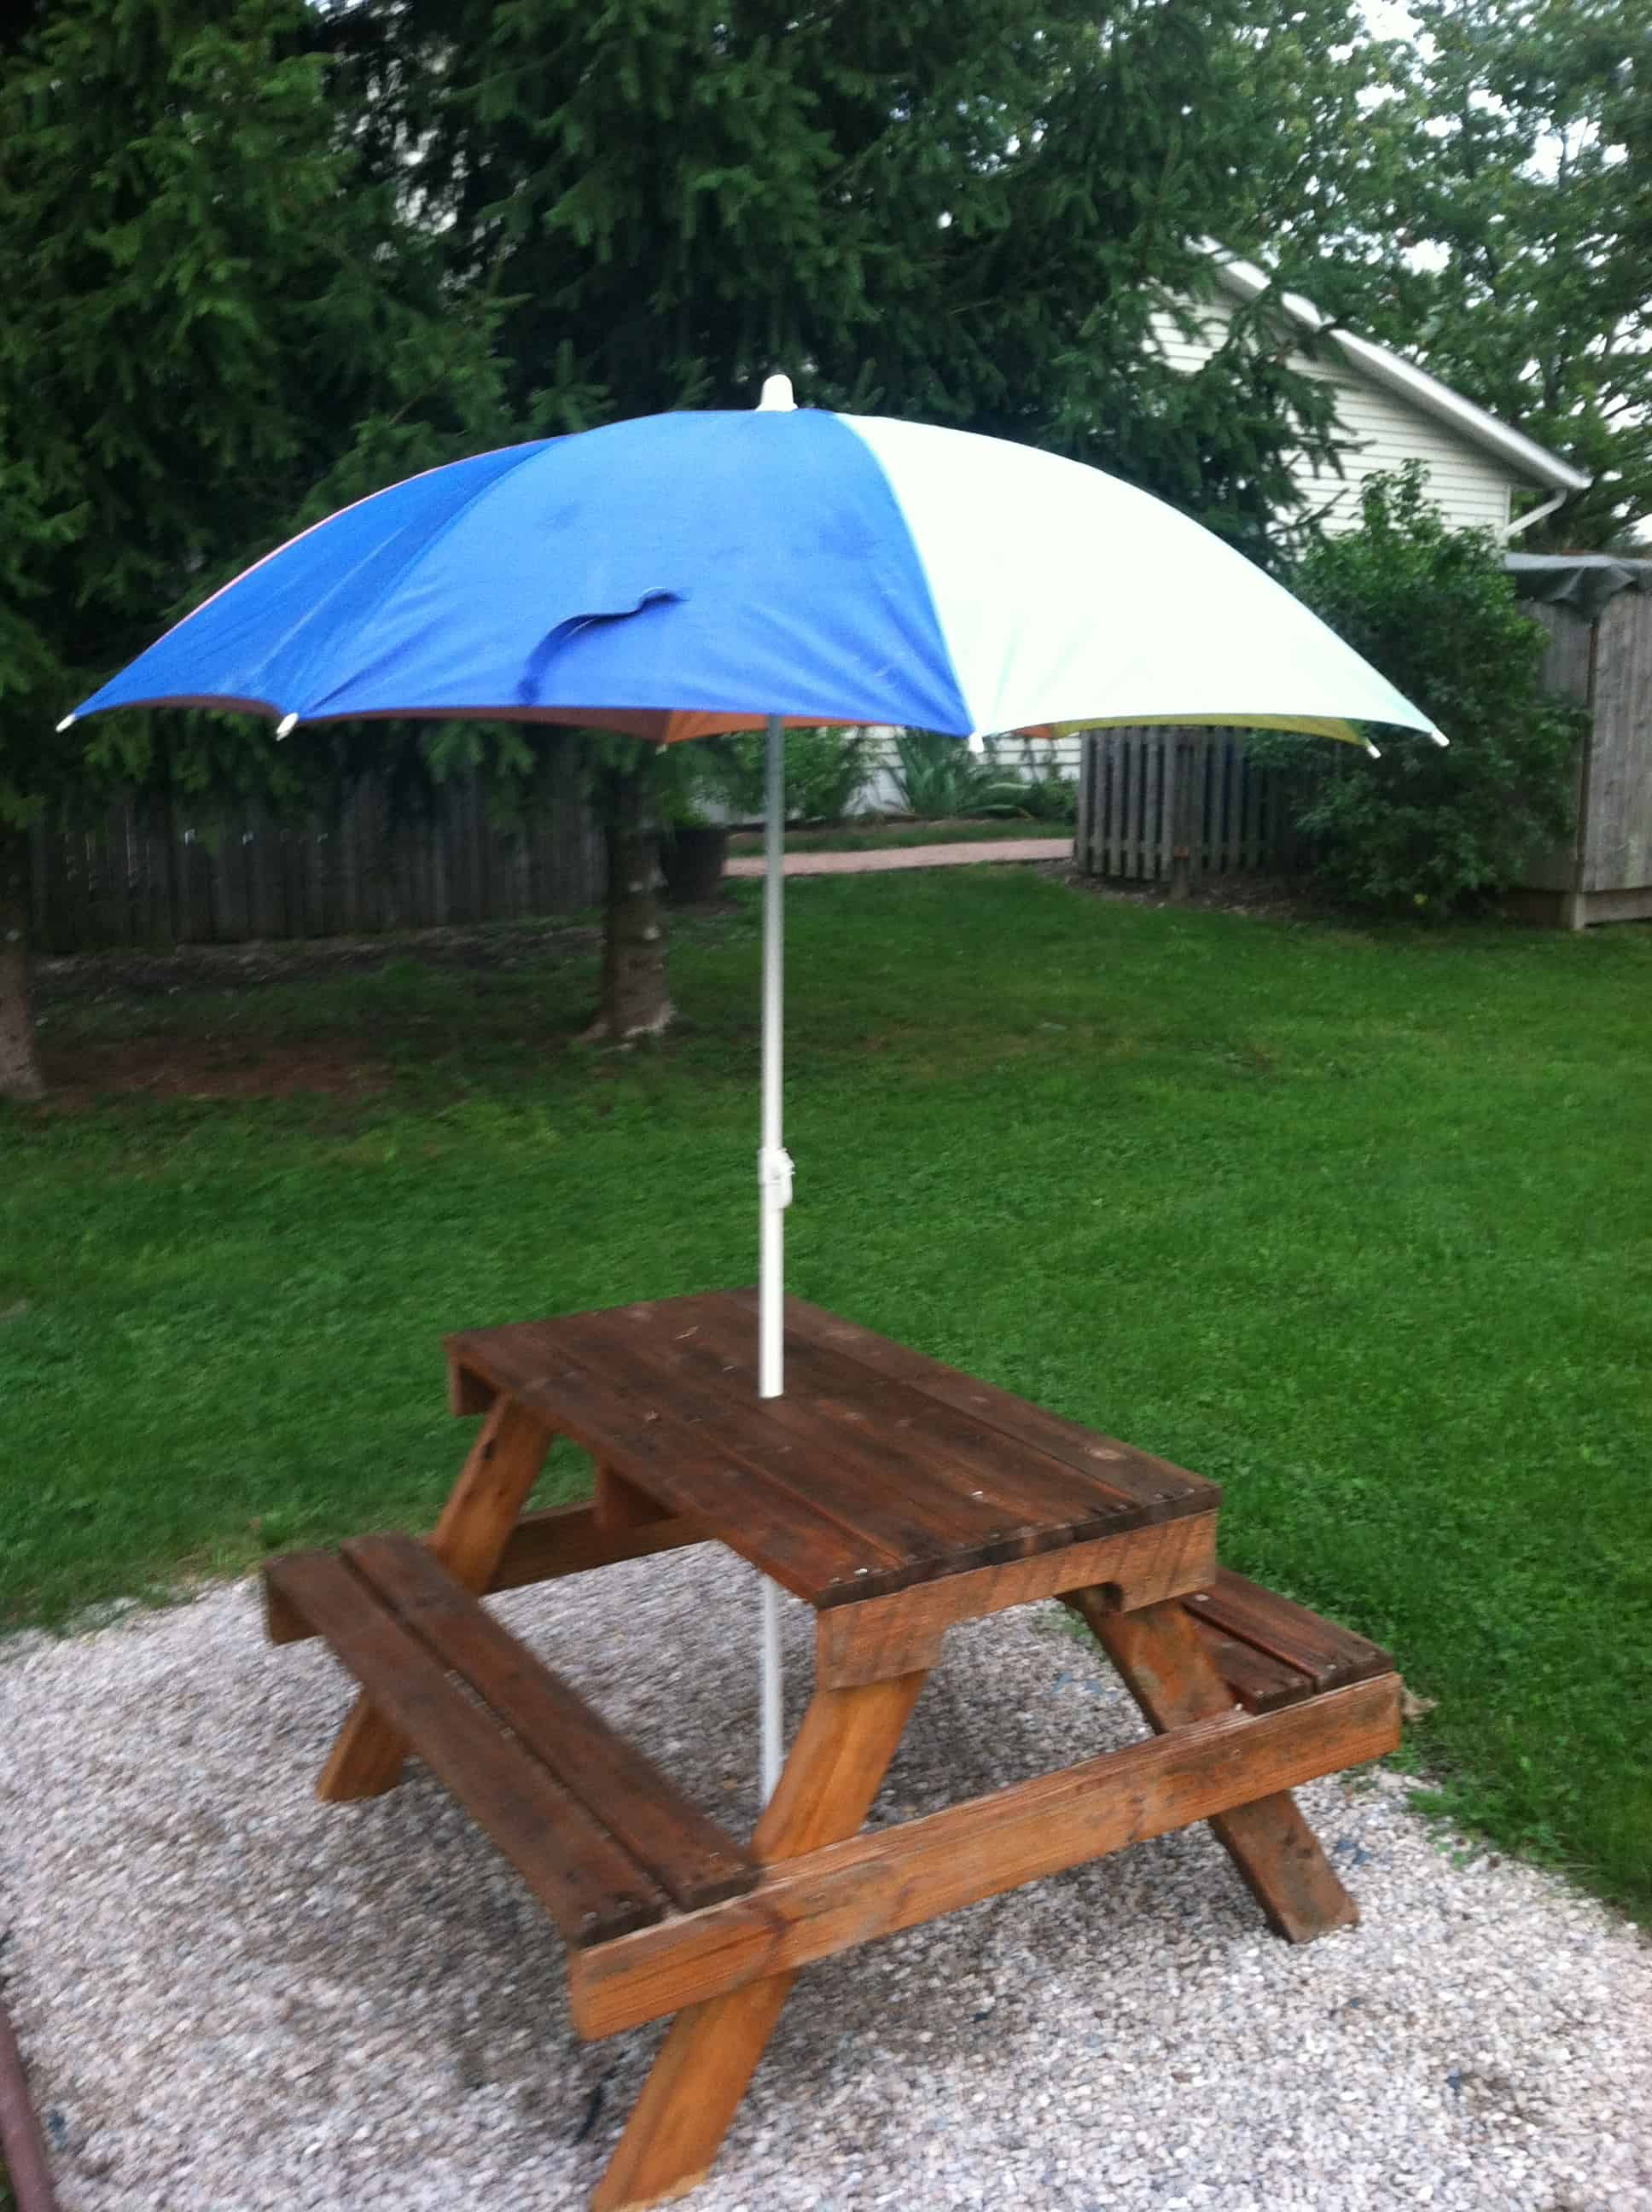 Kids' picnic table with an umbrella hole